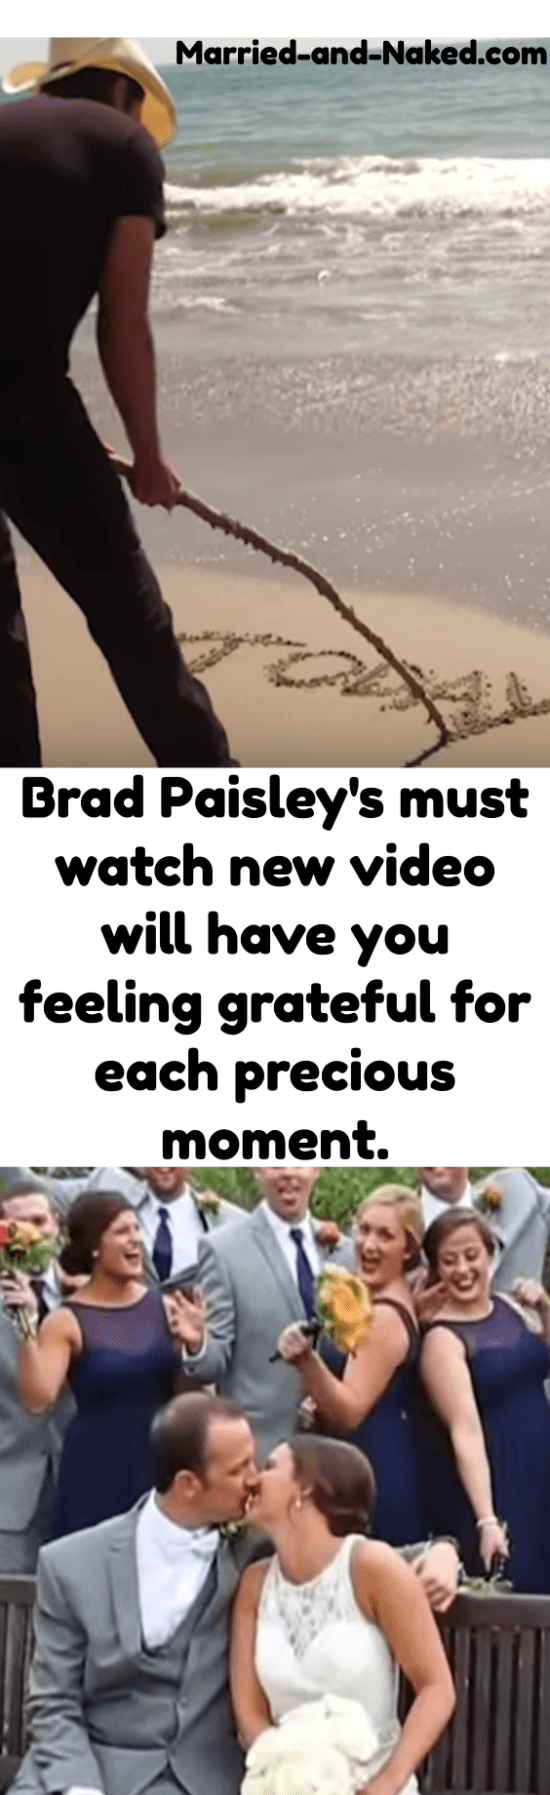 Brad Paisley's beautiful new song and video, Today.